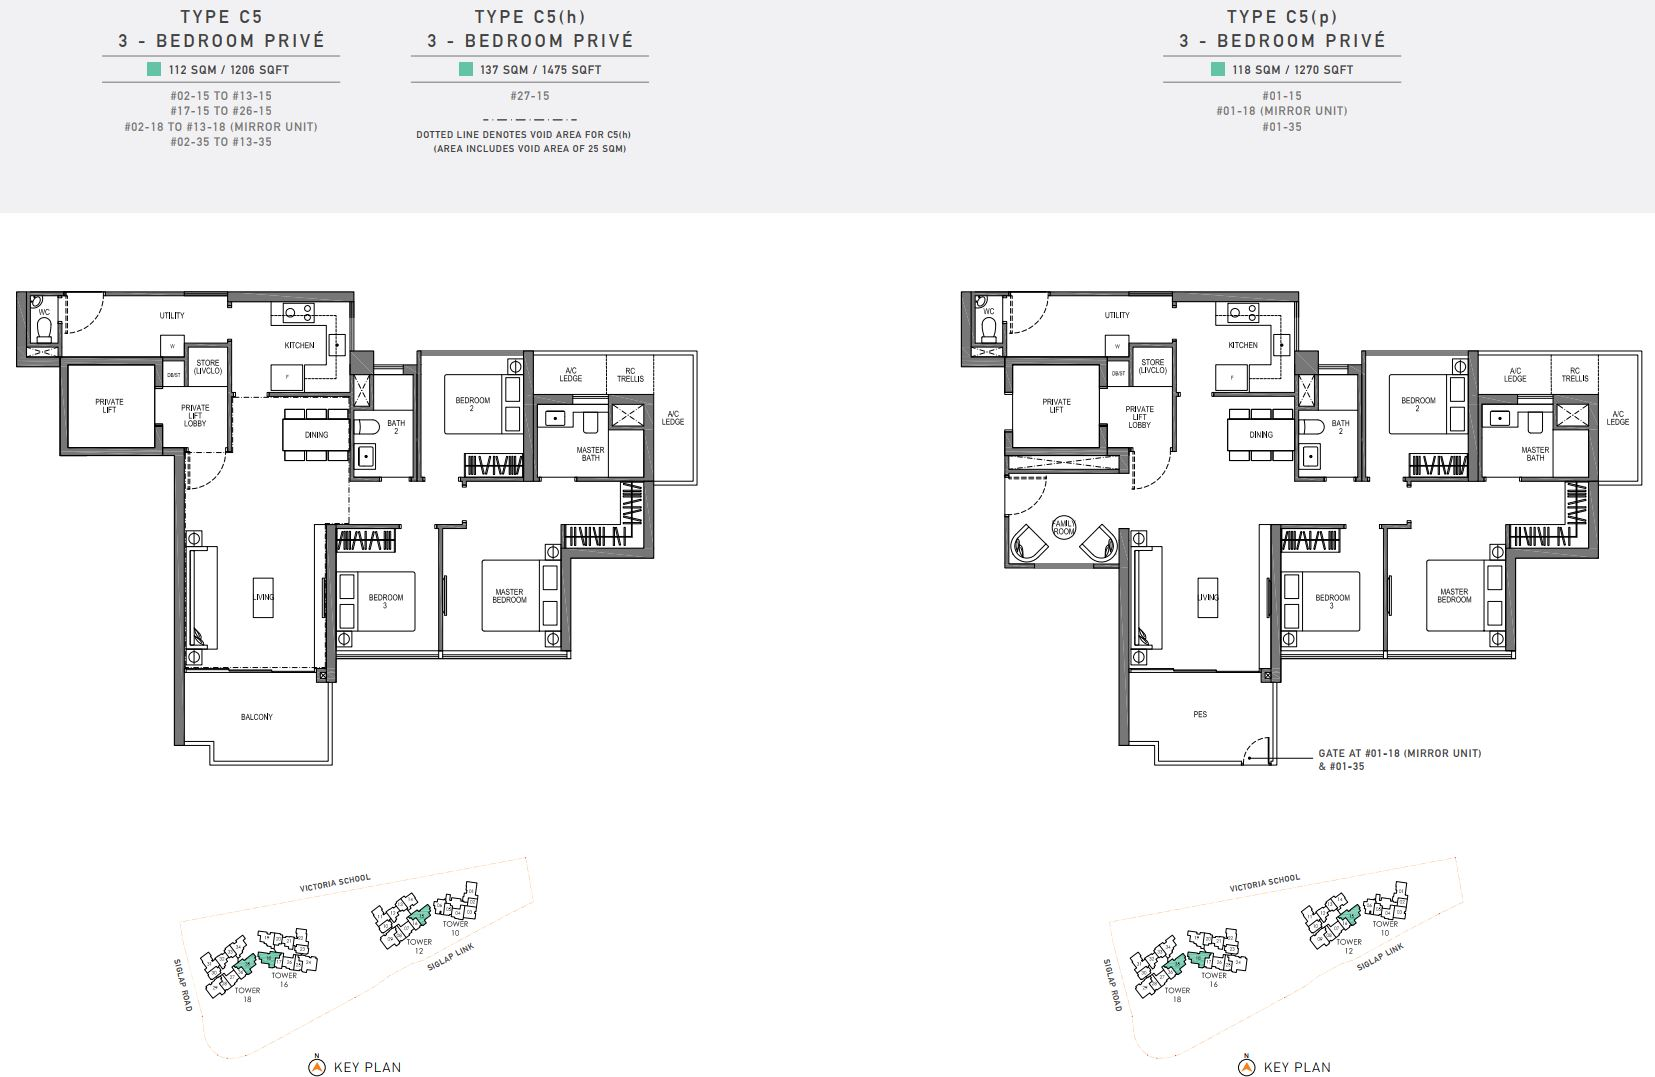 Seaside Residences FloorPlan - 3 Bedroom Prive_2